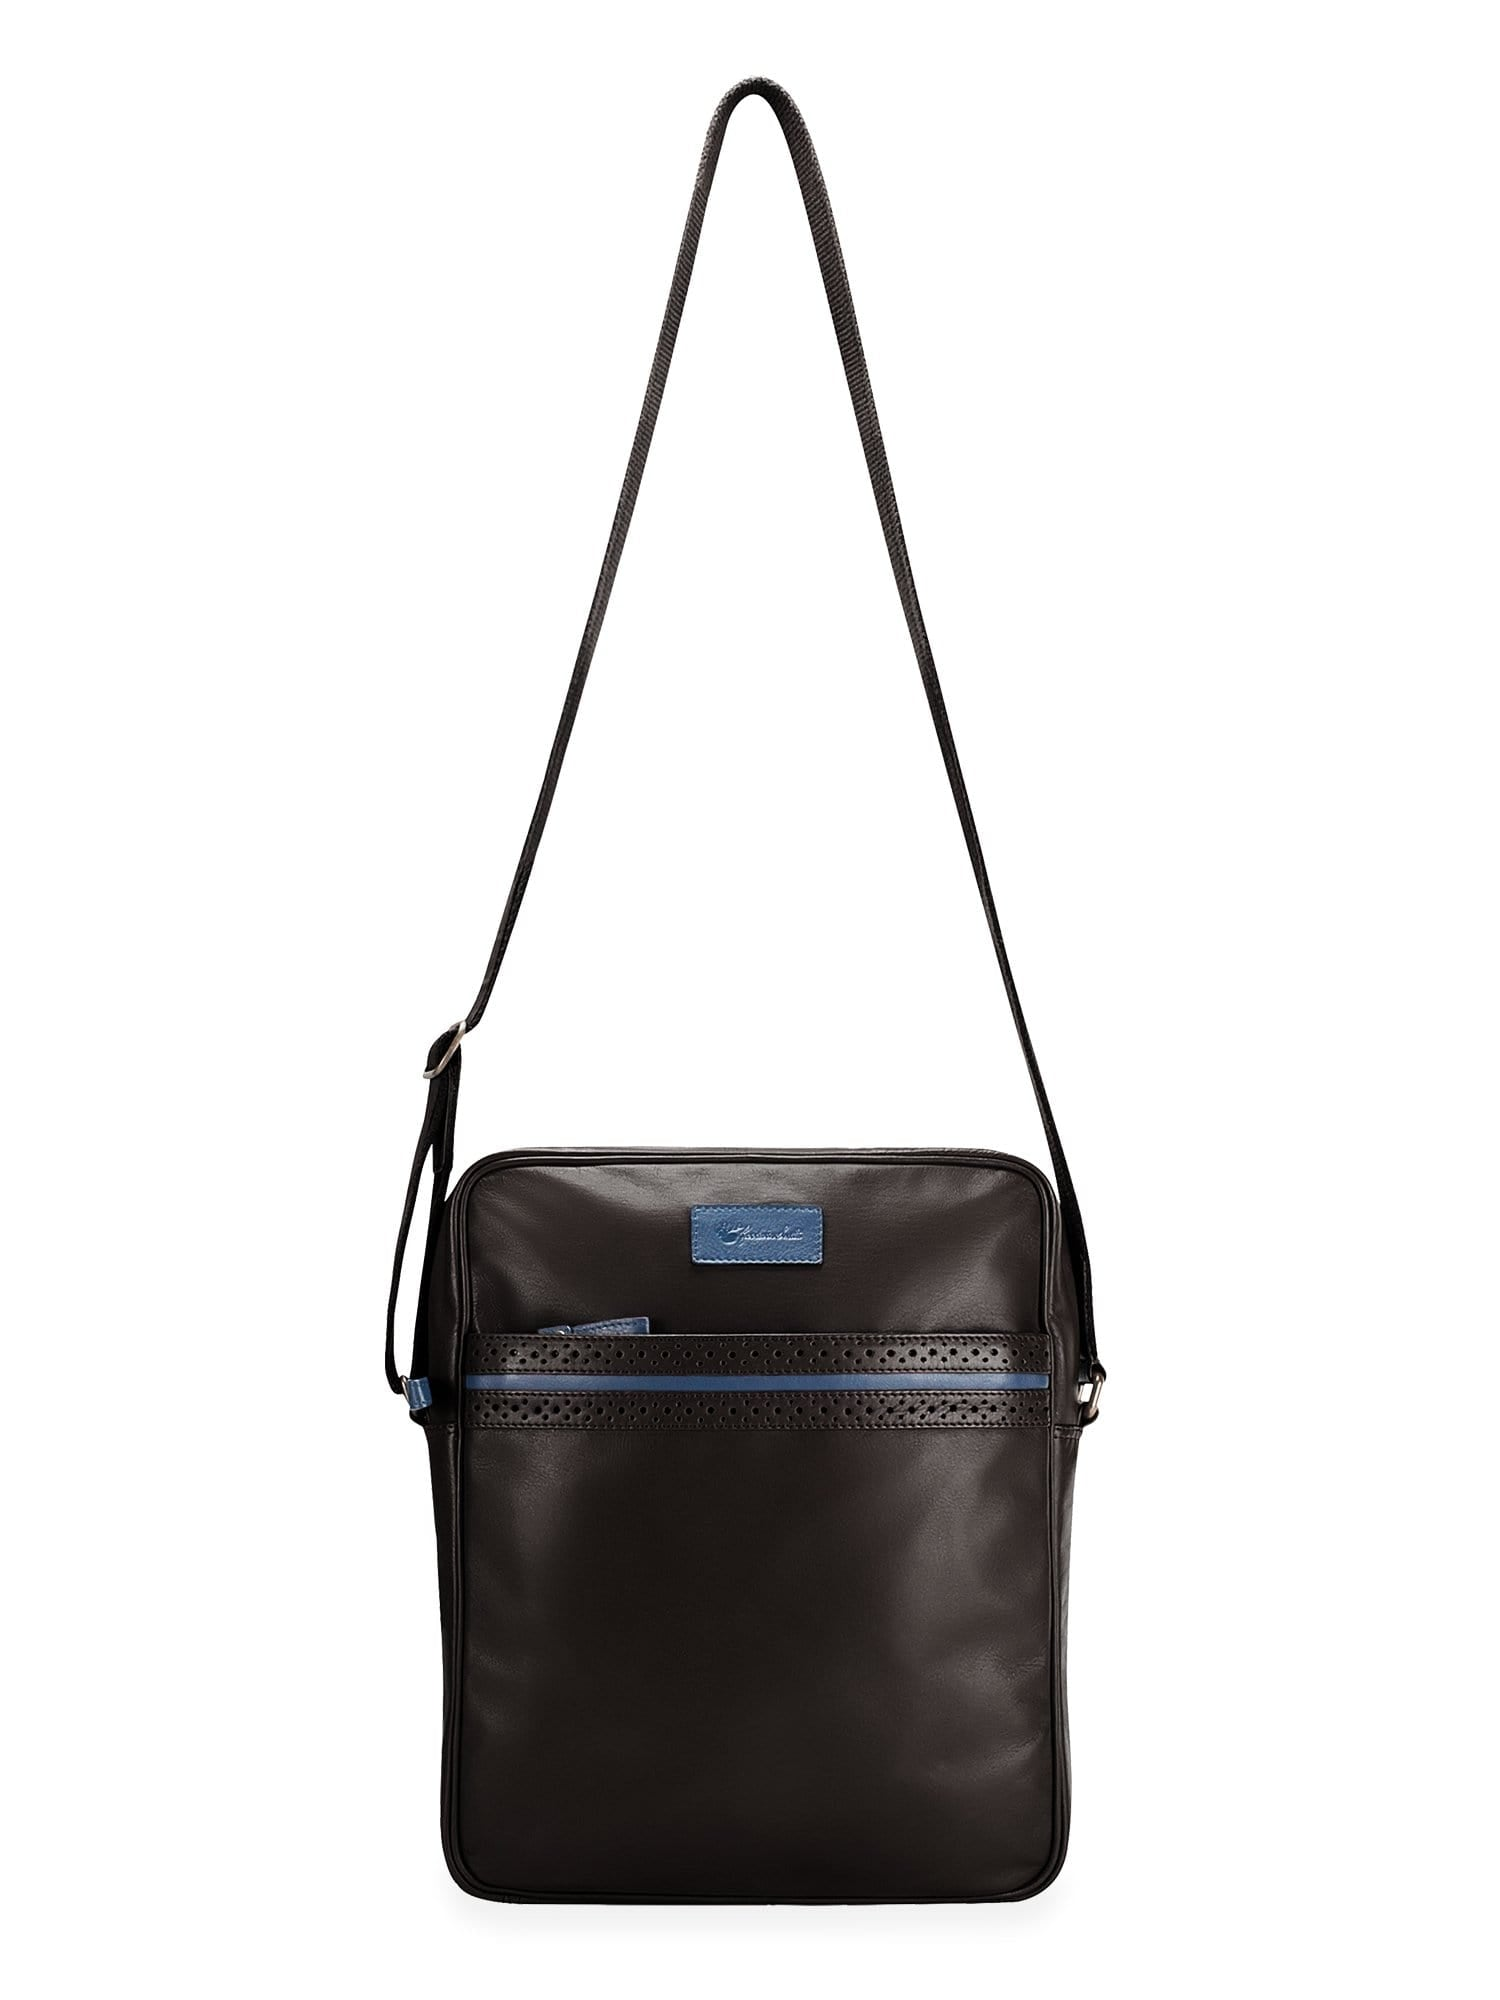 Goodwin Smith Accessories Black / Leather / One Size Bigglesworth Black Leather Shoulder Bag